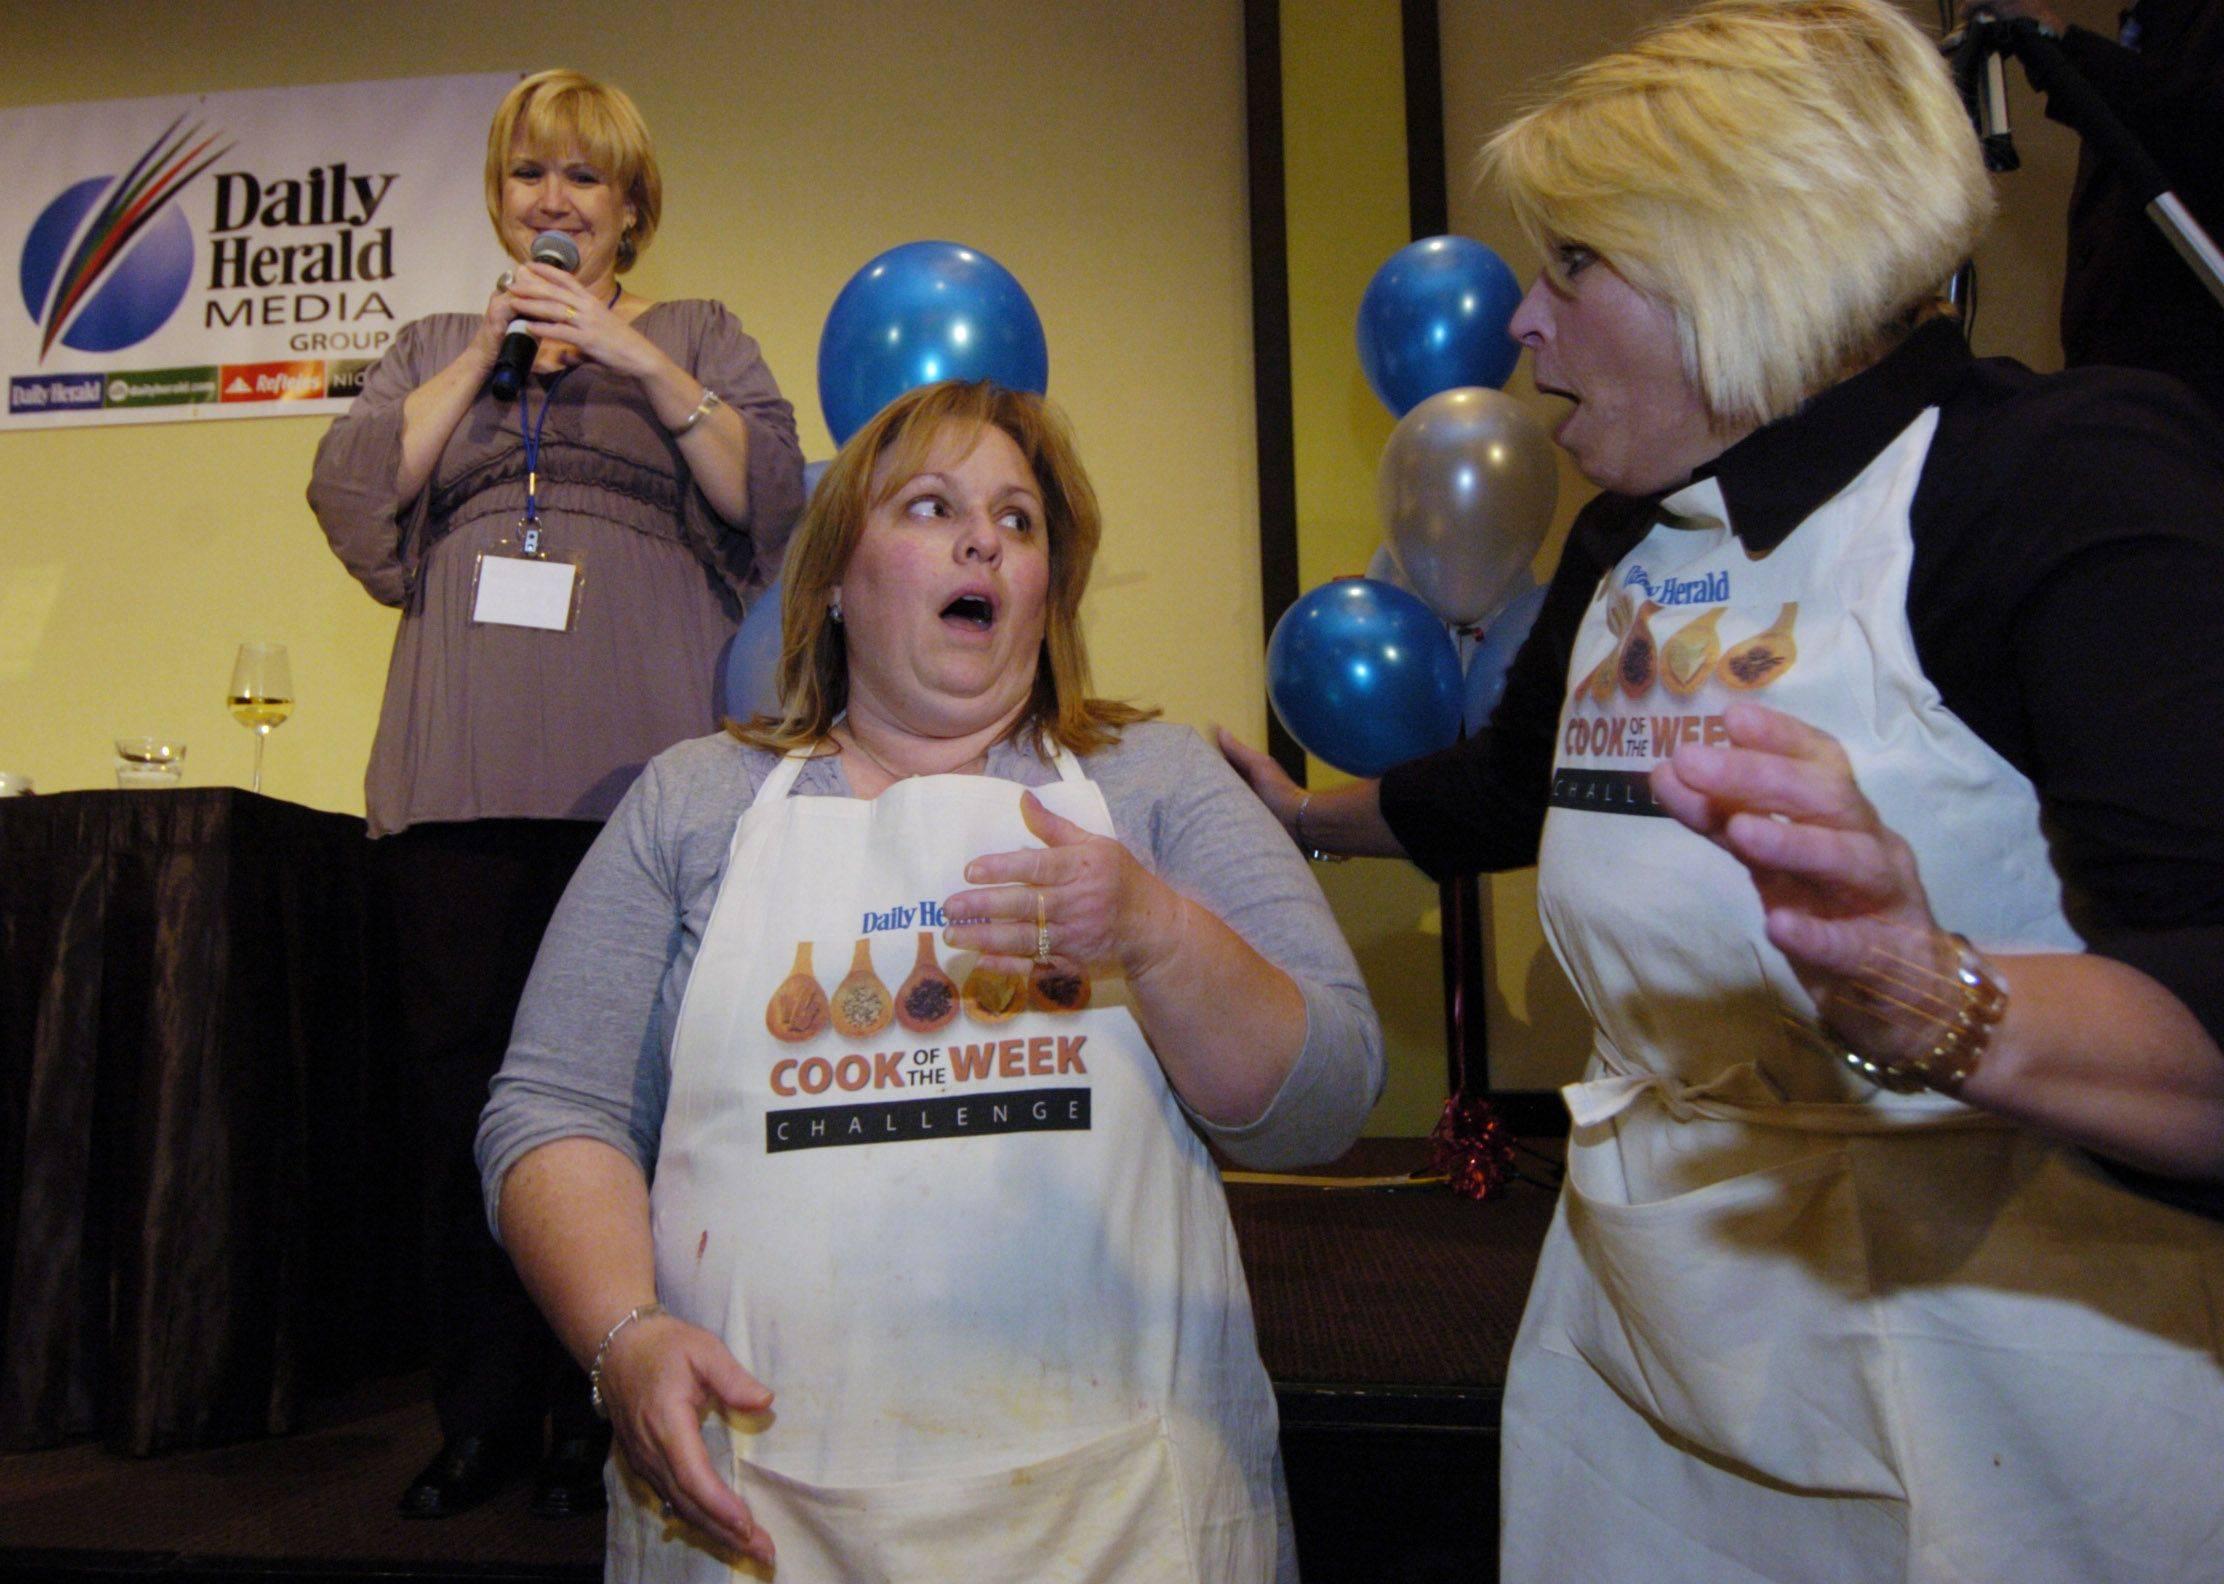 Penny Kazmier, center, of South Barrington reacts to the announcement that she won the Cook of the Week Challenge. Second-place finisher Cate Brusenbach of Antioch is at right, and Daily Herald Food Editor Deb Pankey is at left.